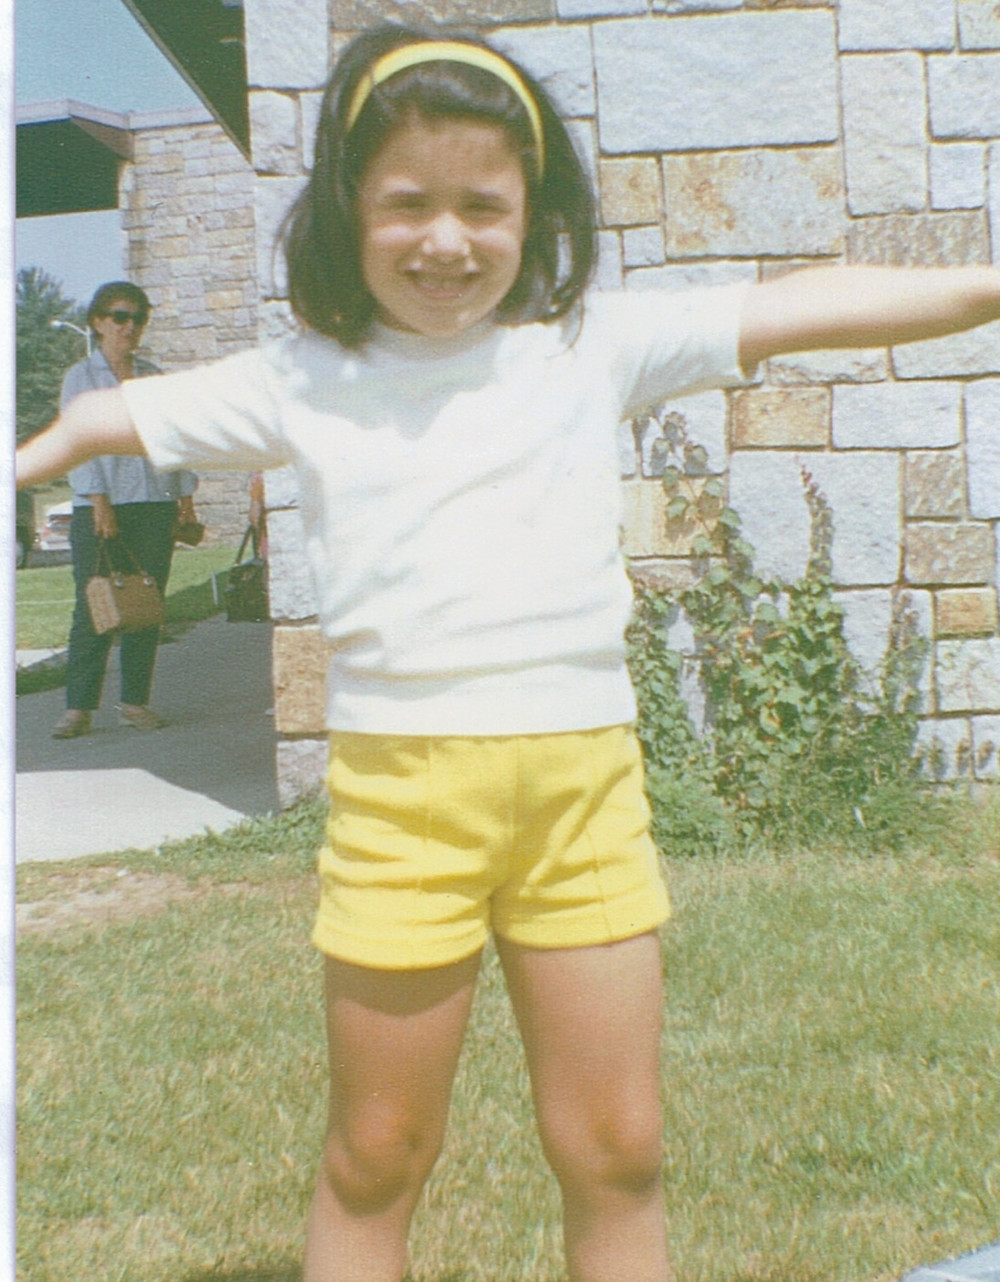 Angie as a young girl with Mom in the background